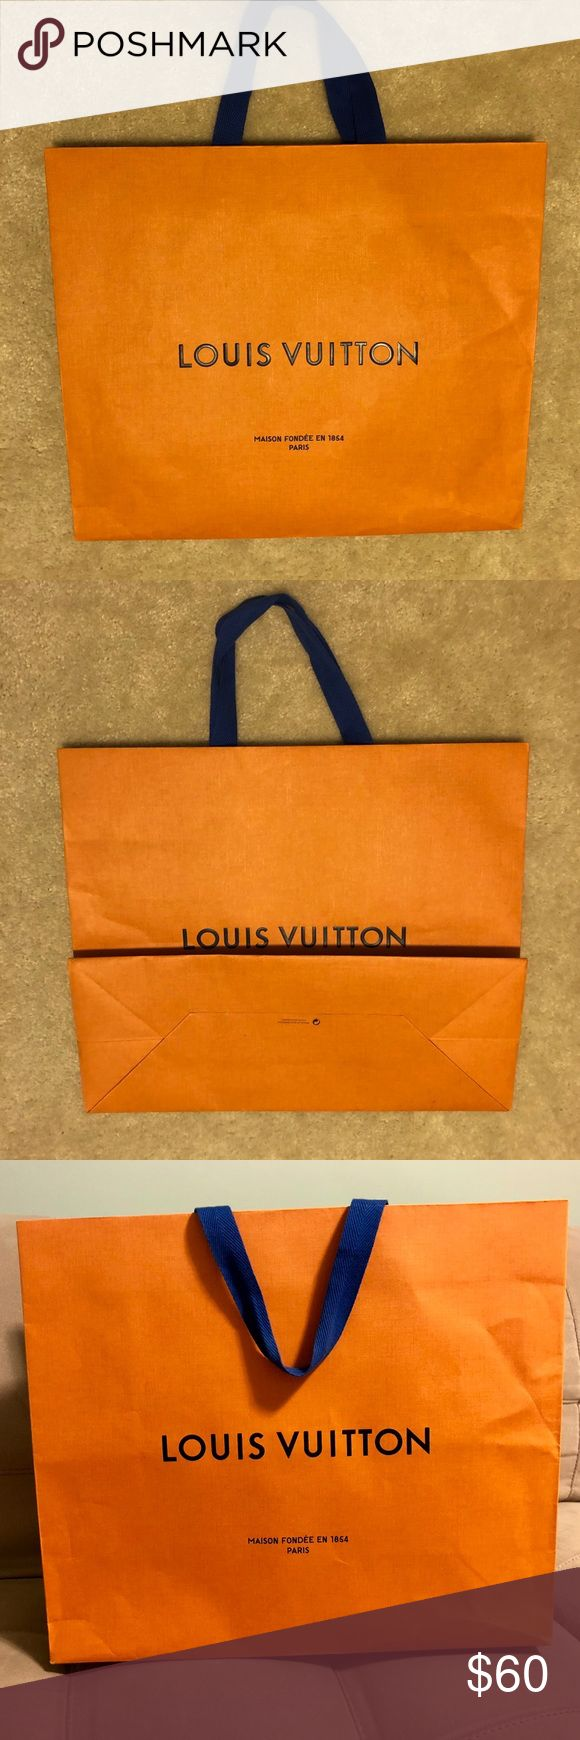 """Louis Vuitton Medium Shopping Bag- Newest Style! Louis Vuitton Medium Shopping Bag. Newest Version. Just received from LV store in Milan, Italy in September of 2017. Measurements are 16"""" wide x 13.5"""" tall x 6.5"""" deep. Fit a box for an MM size purse and a box for a wallet. Smoke free home! Louis Vuitton Bags"""